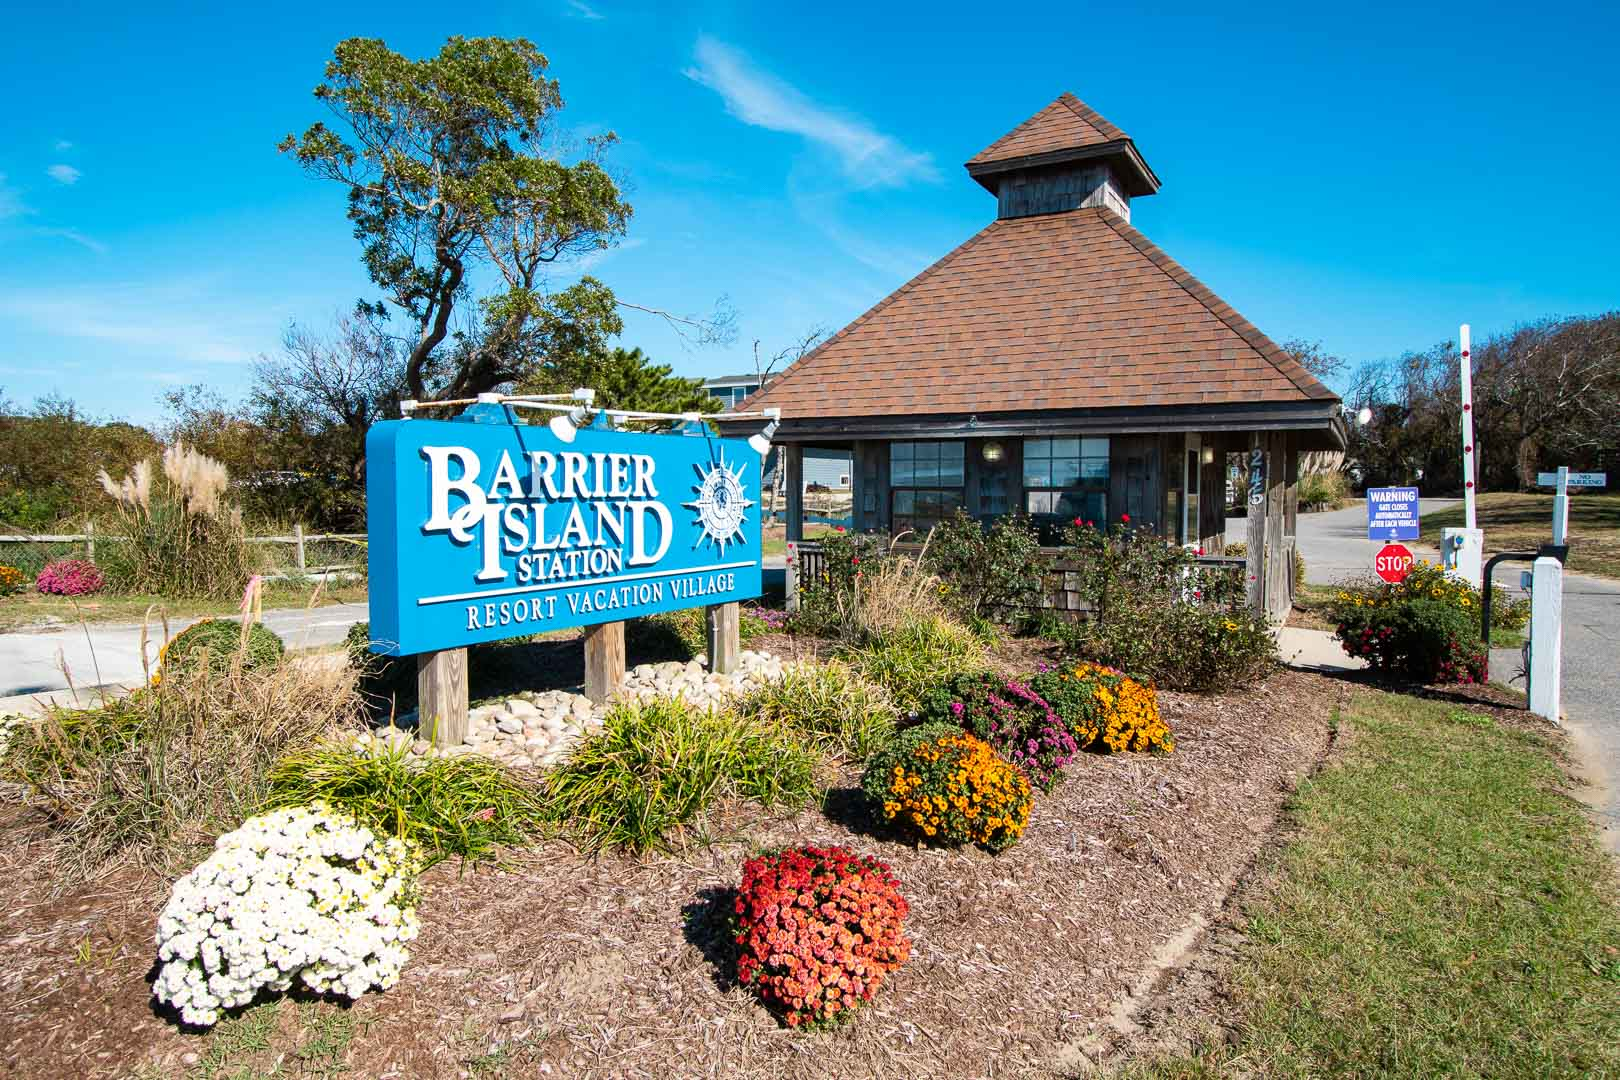 A welcoming resort entrance at VRI's Barrier Island Station in North Carolina.